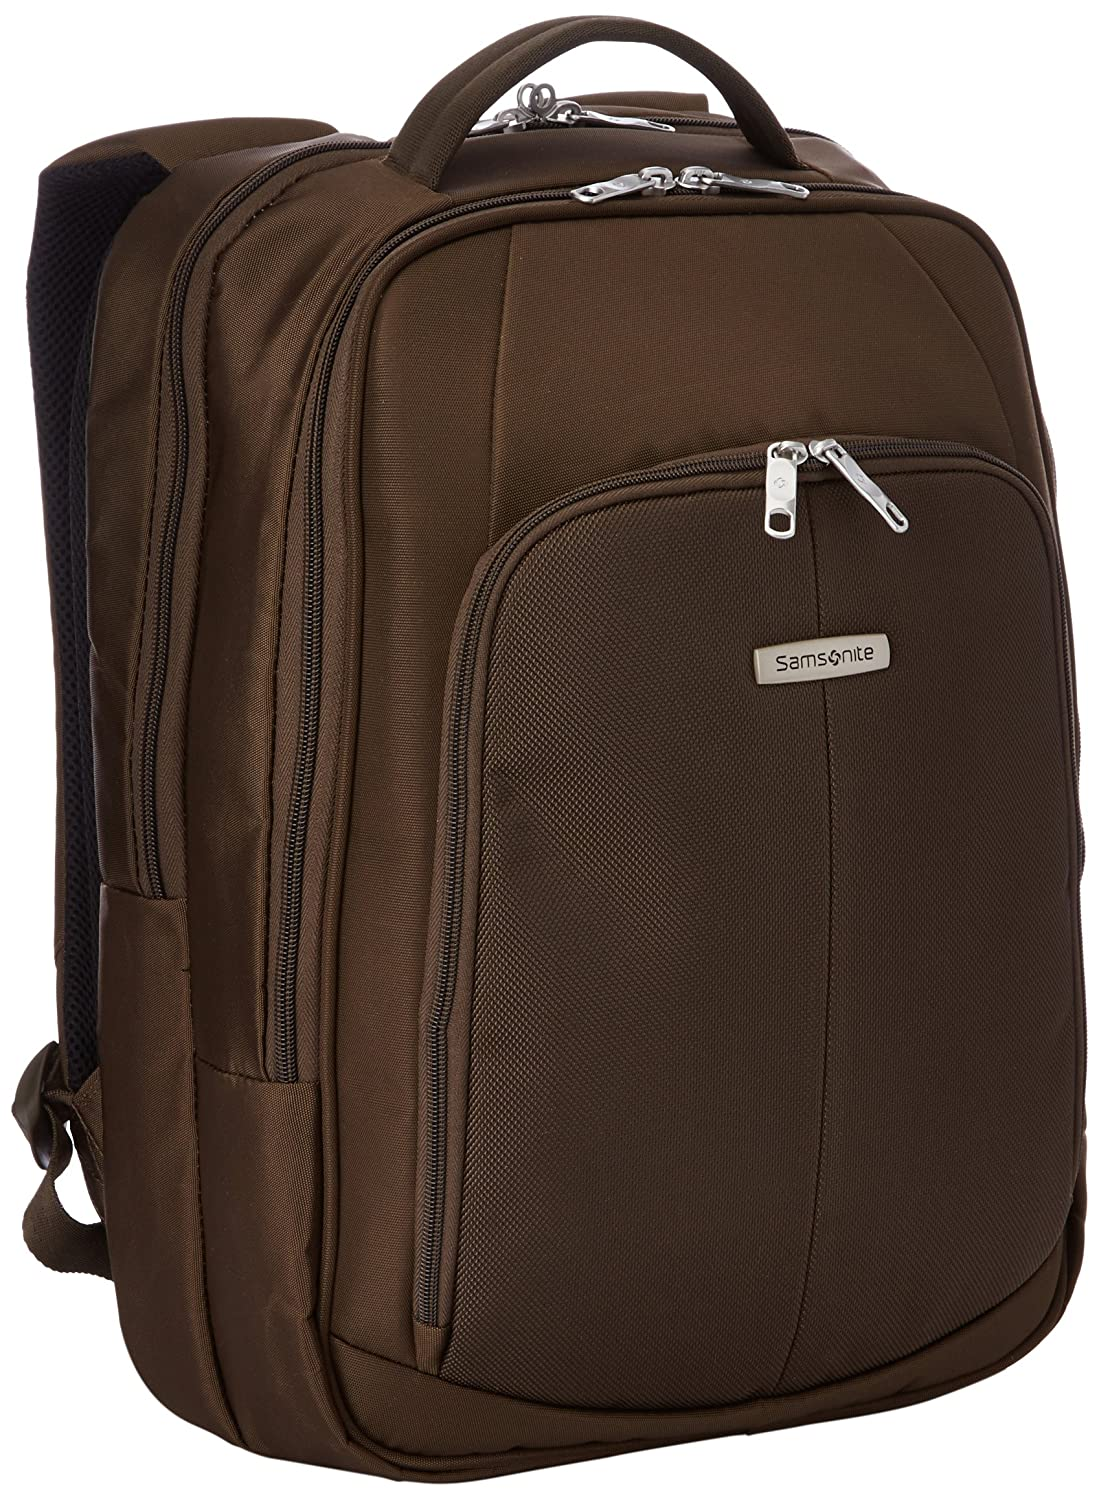 Samsonite Bolso Escolares, Dark Brown (Marrón) - 56335-1251: Amazon.es: Equipaje